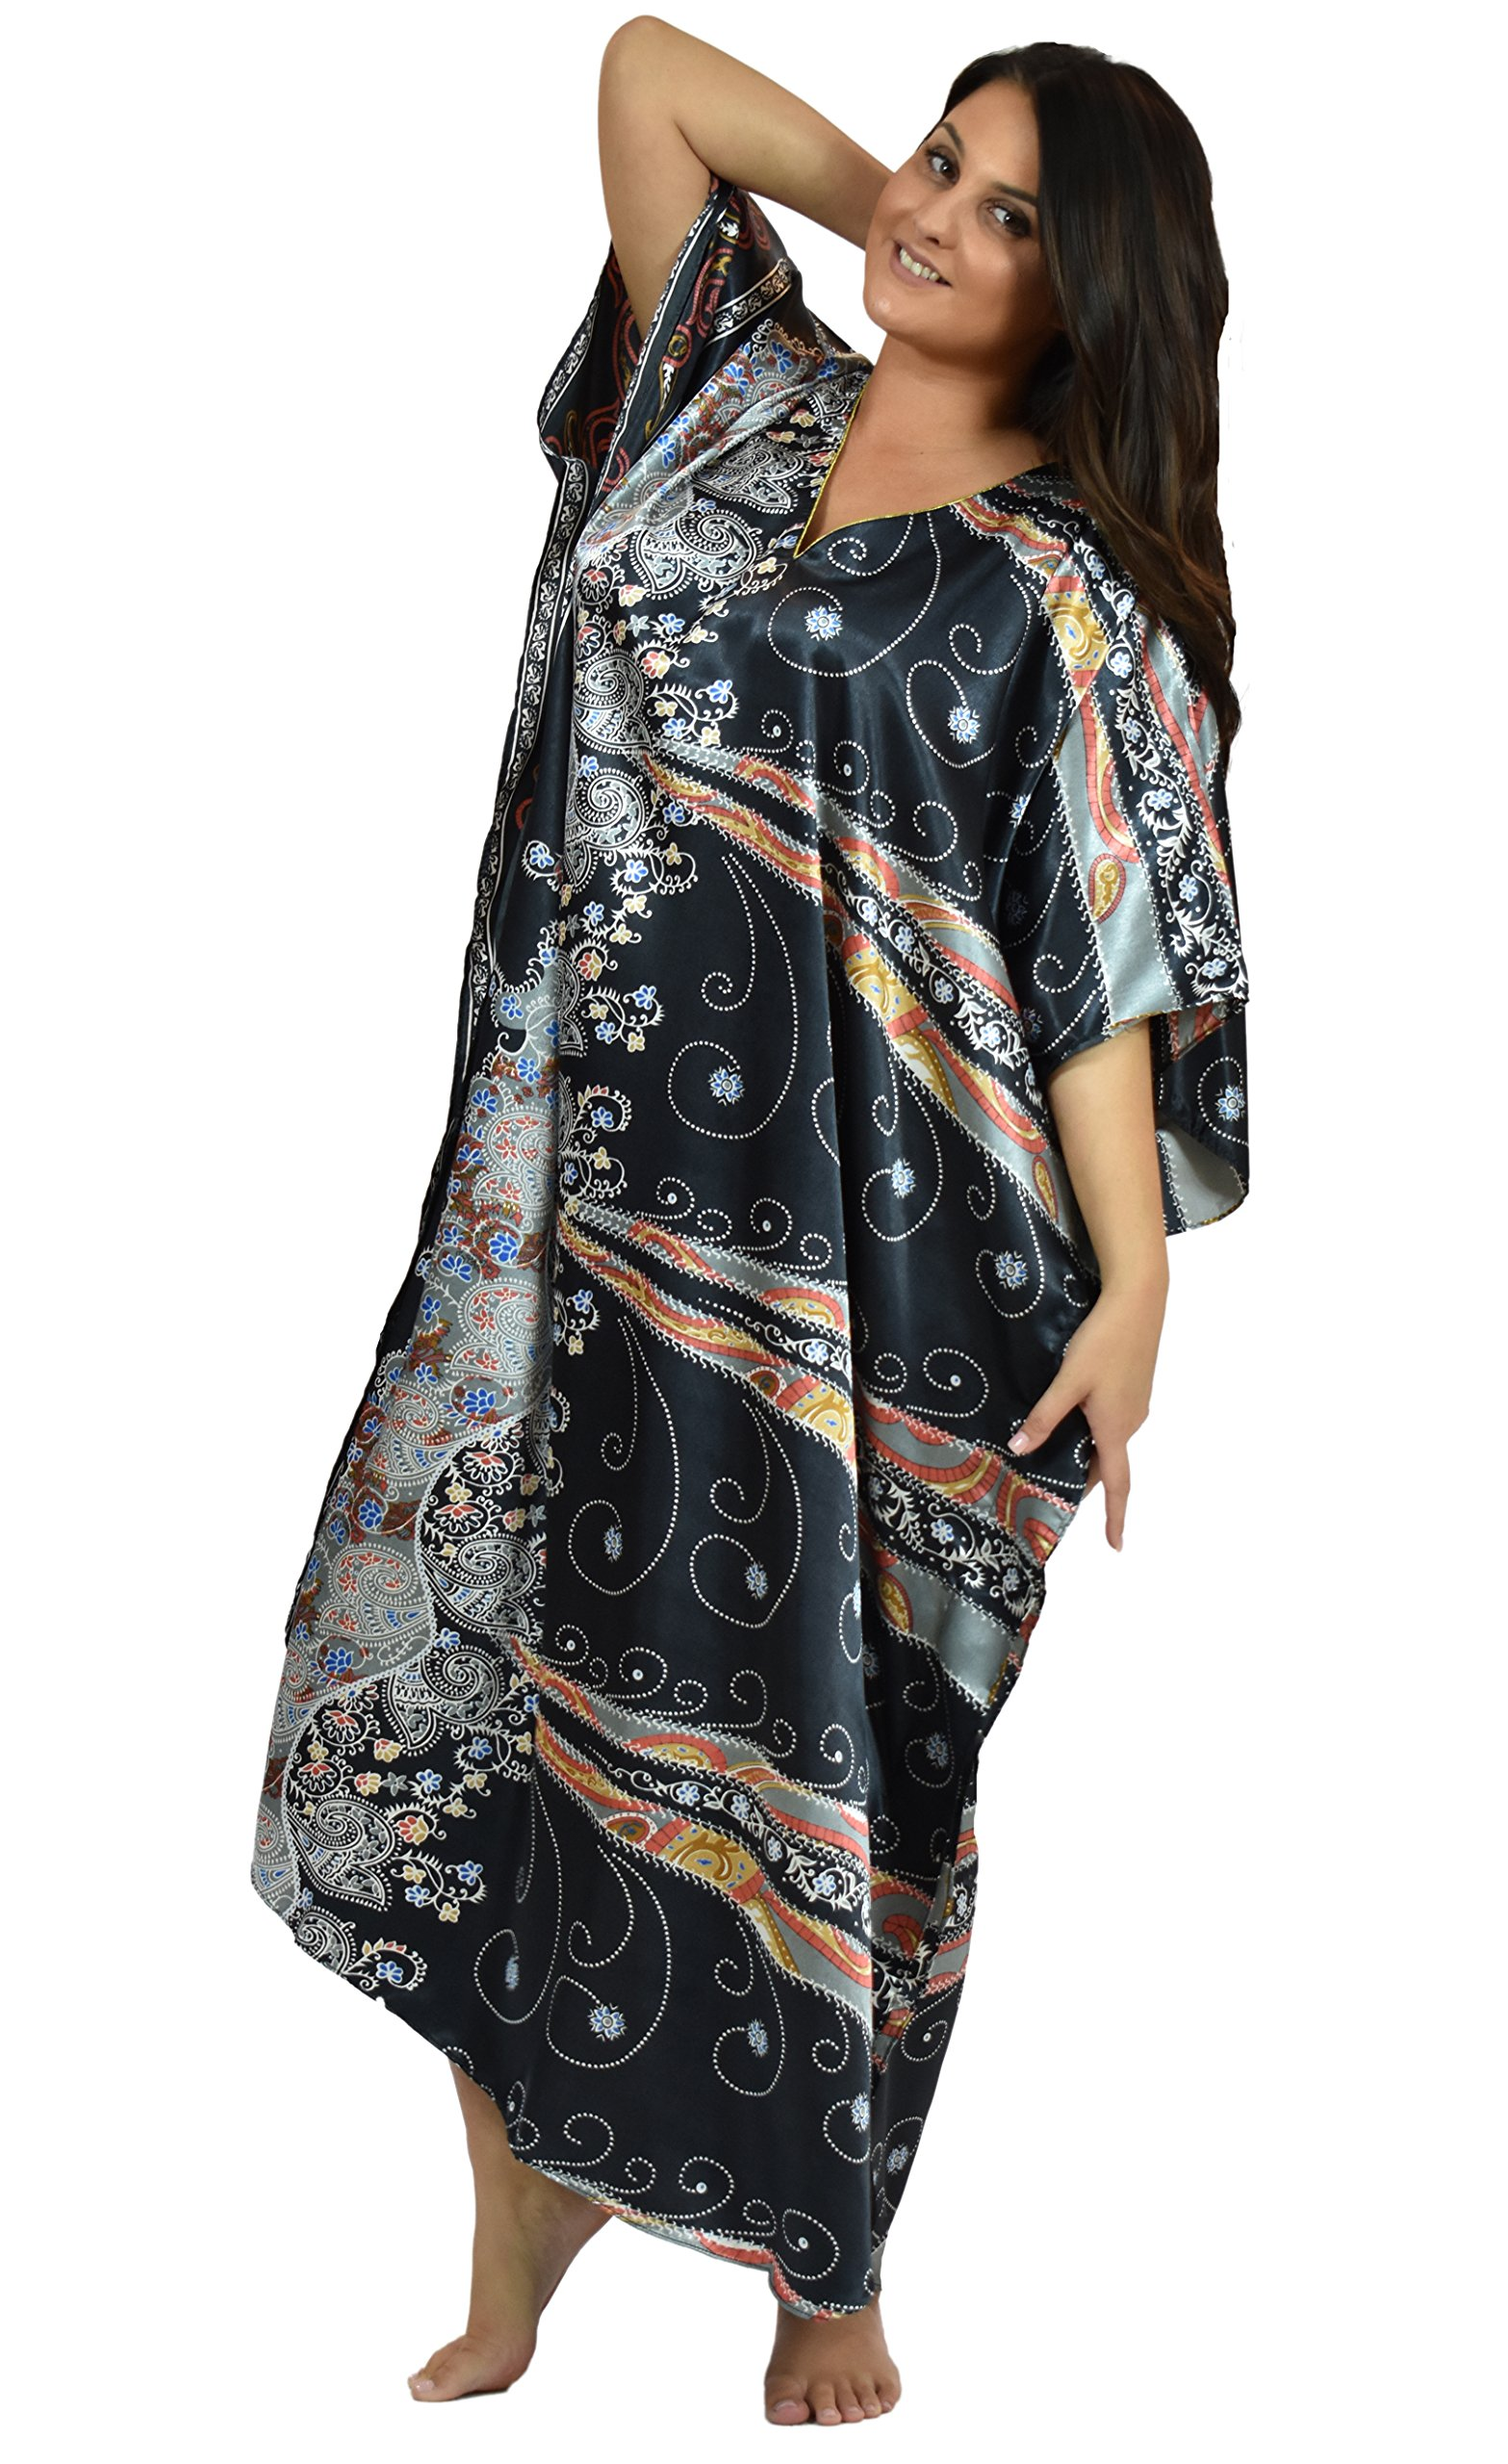 Up2date Fashion Satin Caftan in Desert Nights Print, Style Caf-22C2